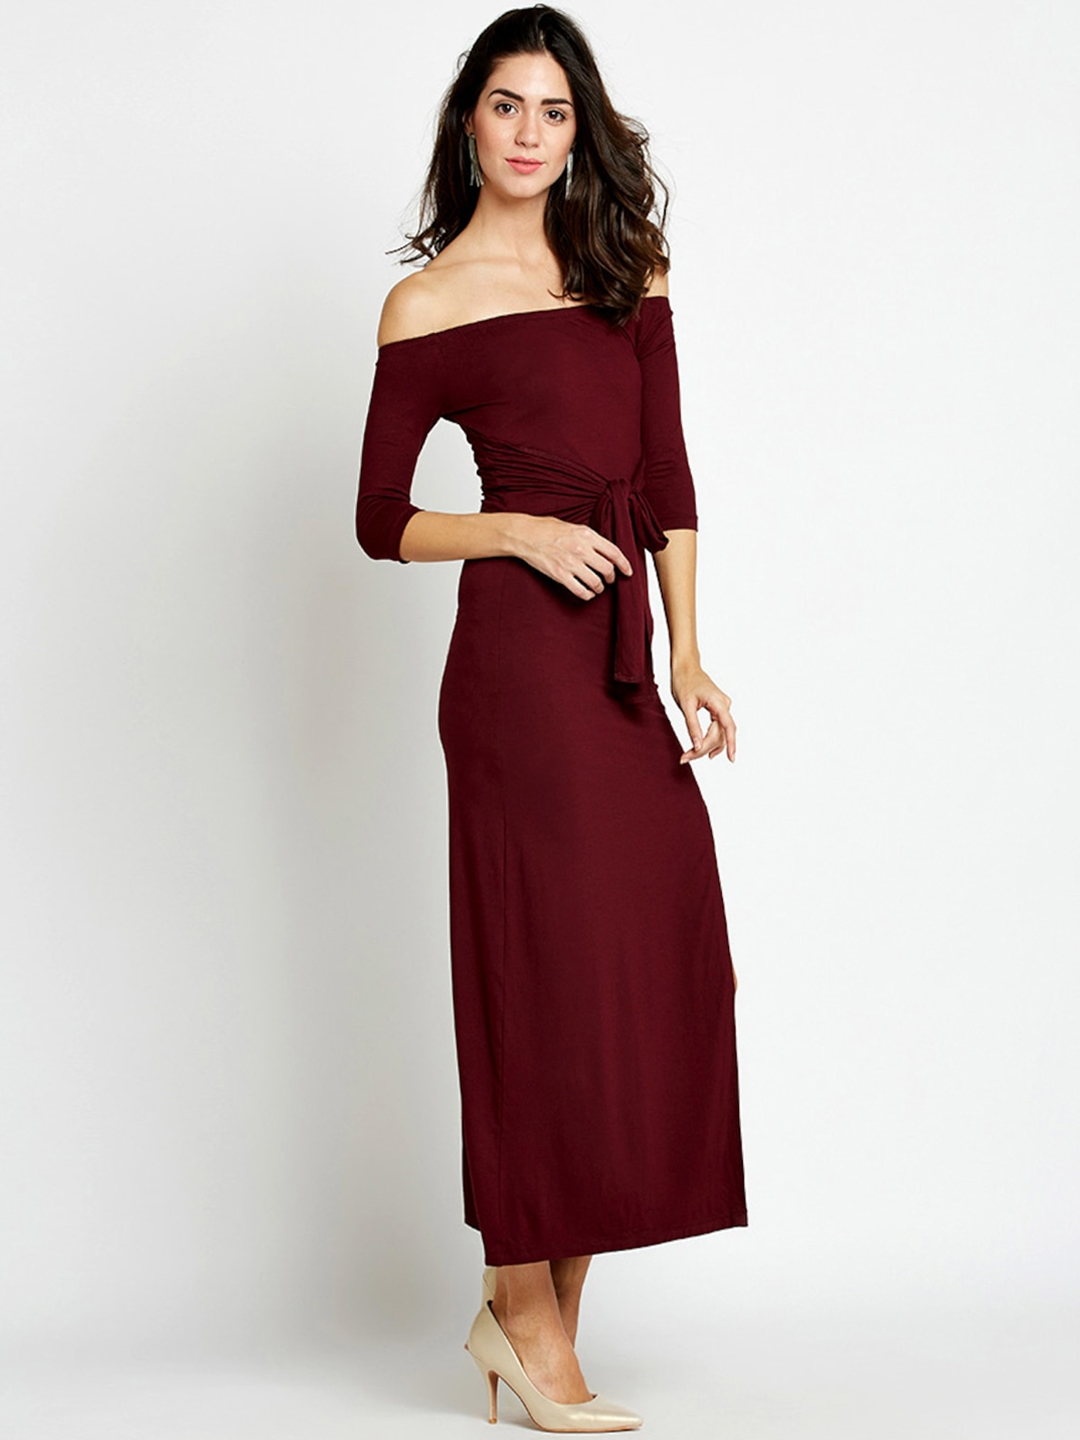 4884819013e0 Buy StalkBuyLove Women Maroon Solid Bodycon Off Shoulder Dress ...